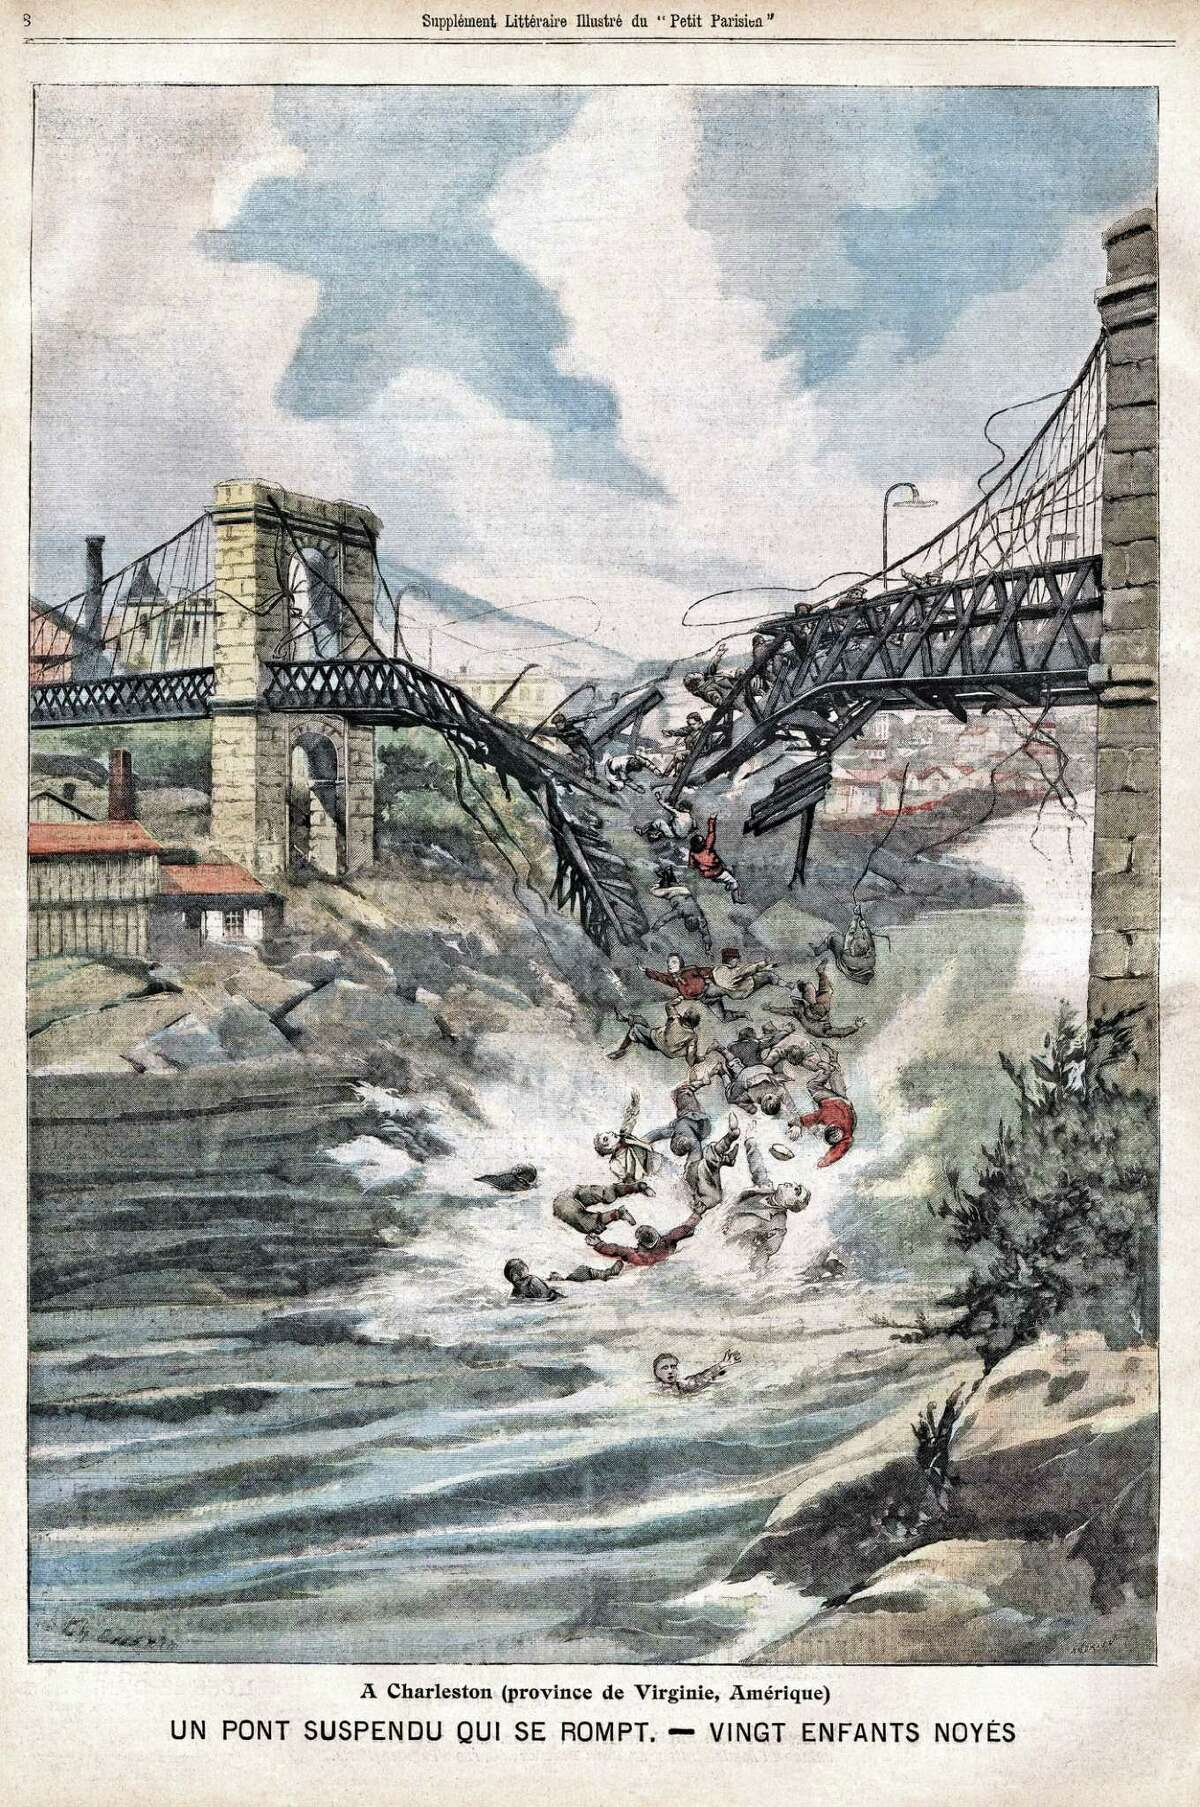 Death of twenty children in the collapse of a suspended bridge, in Charleston, USA, Illustration from French newspaper Le Petit Parisien, January 1st, 1905,